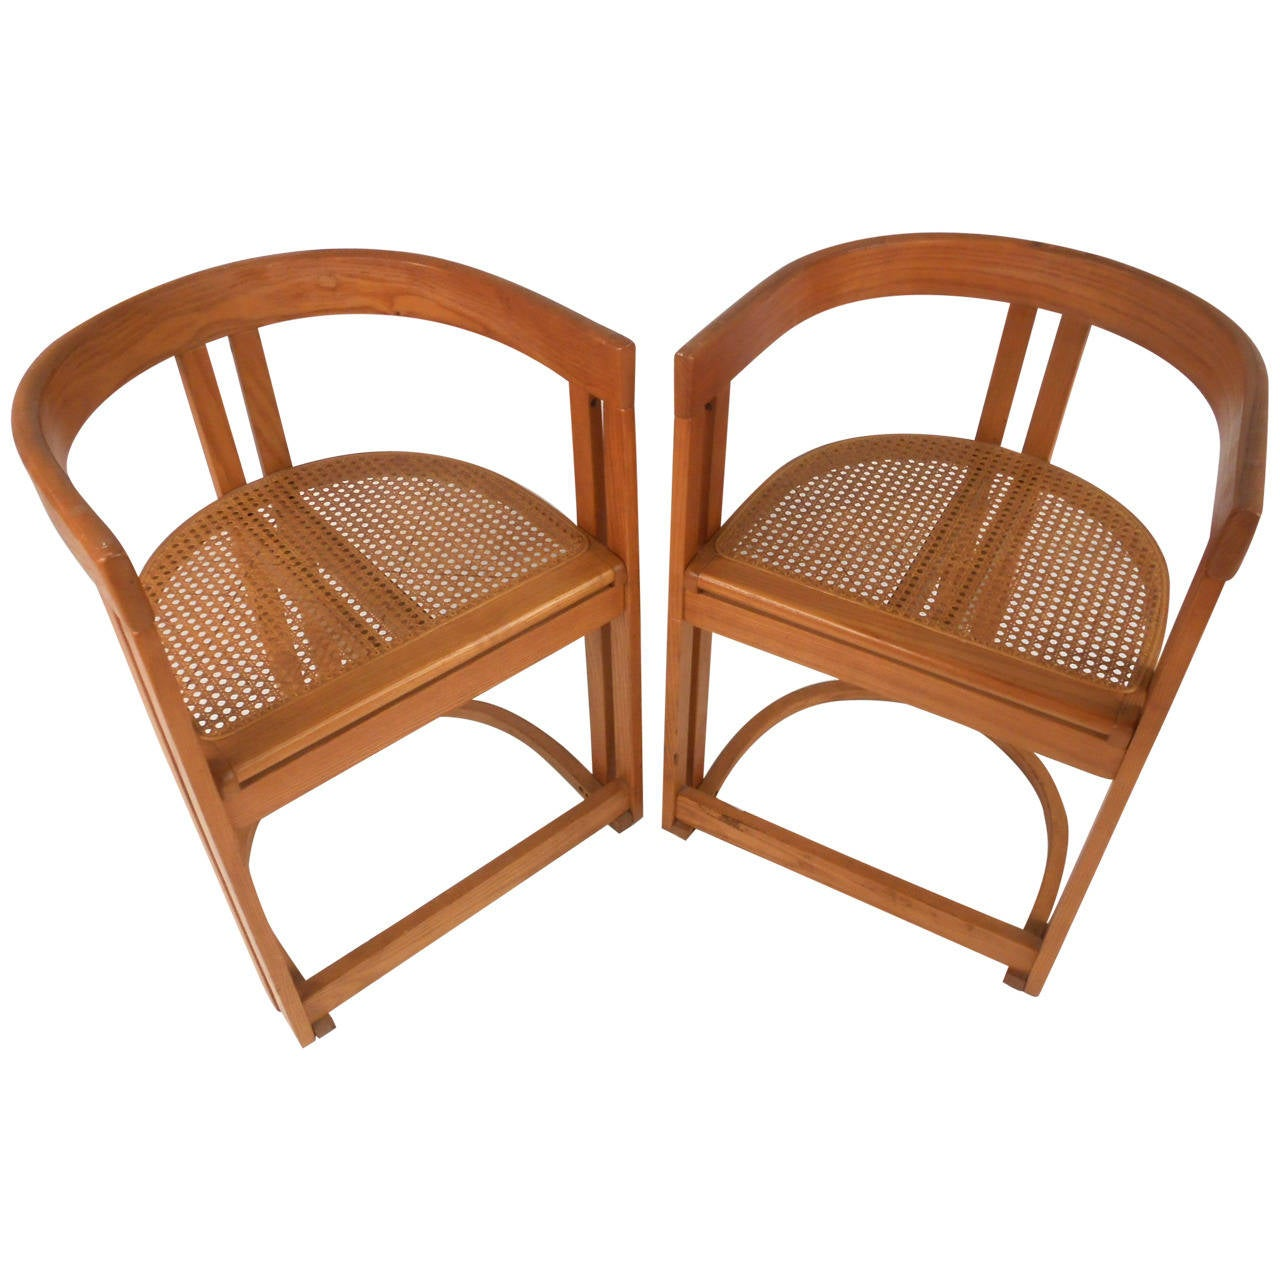 Hans Wegner Danish Style Folding Rope Chair furthermore Id F 1899292 besides Ca1960PAIR Of MID CENTURY HANS WEGNER STYLE FOLDING ROPE 352296031649 further Id F 8569003 furthermore Id F 5602053. on danish hans wegner style rope folding